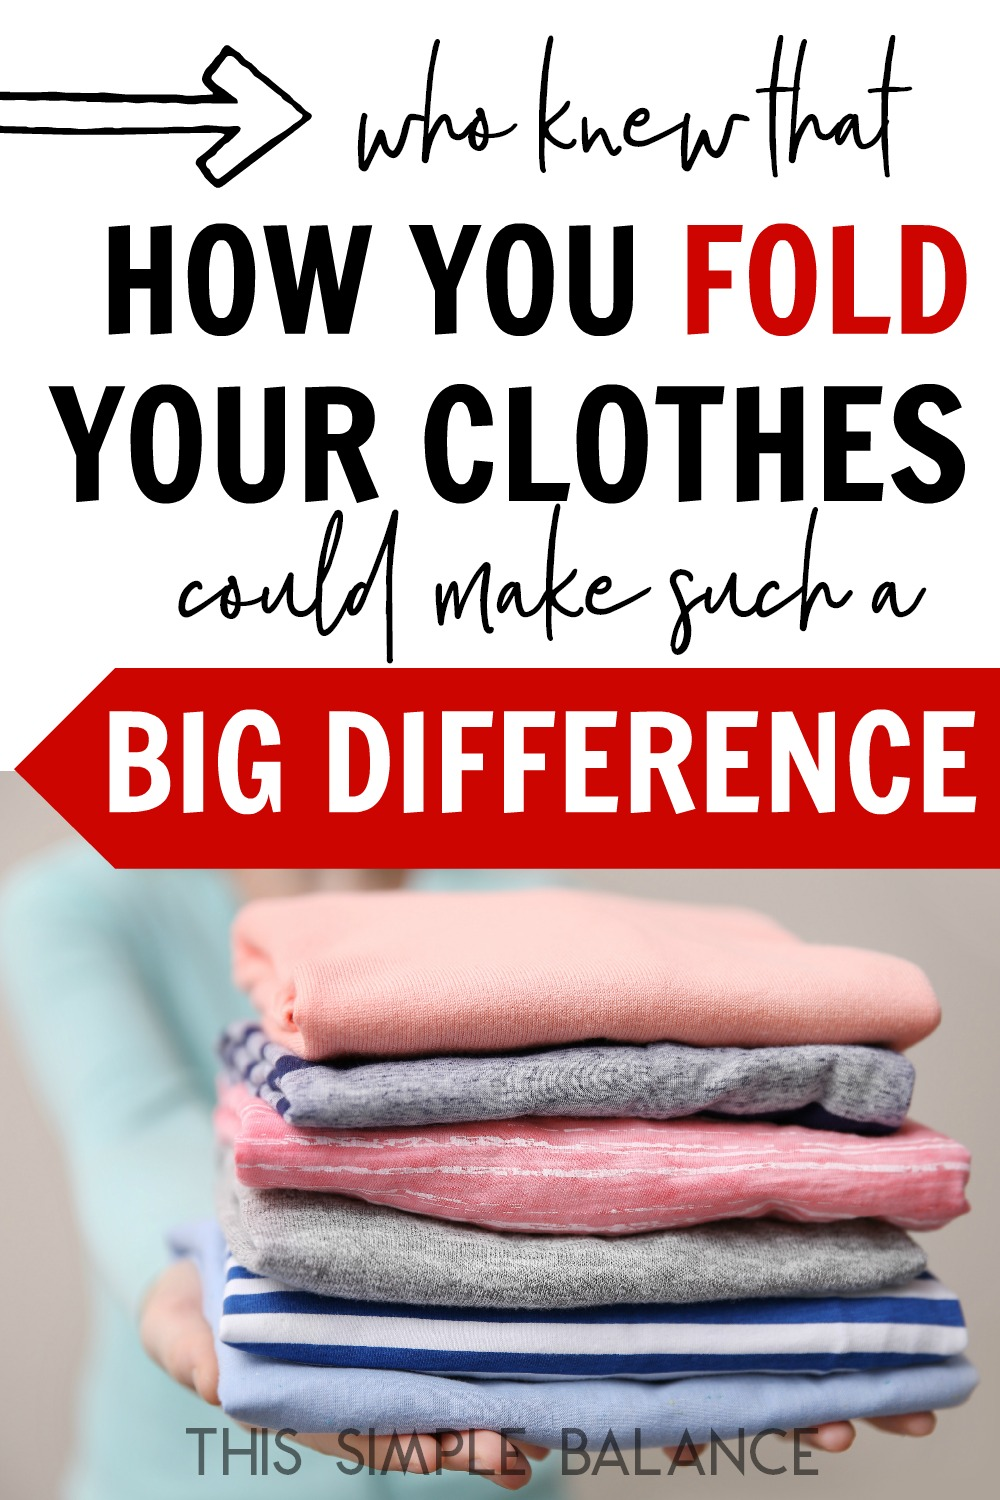 Folding Clothes shouldn't be that big a deal. But THIS method of folding clothes seriously changed my life - and it might change yours (even if you're not an organization neat freak). Say good-bye to messy drawers! For good.